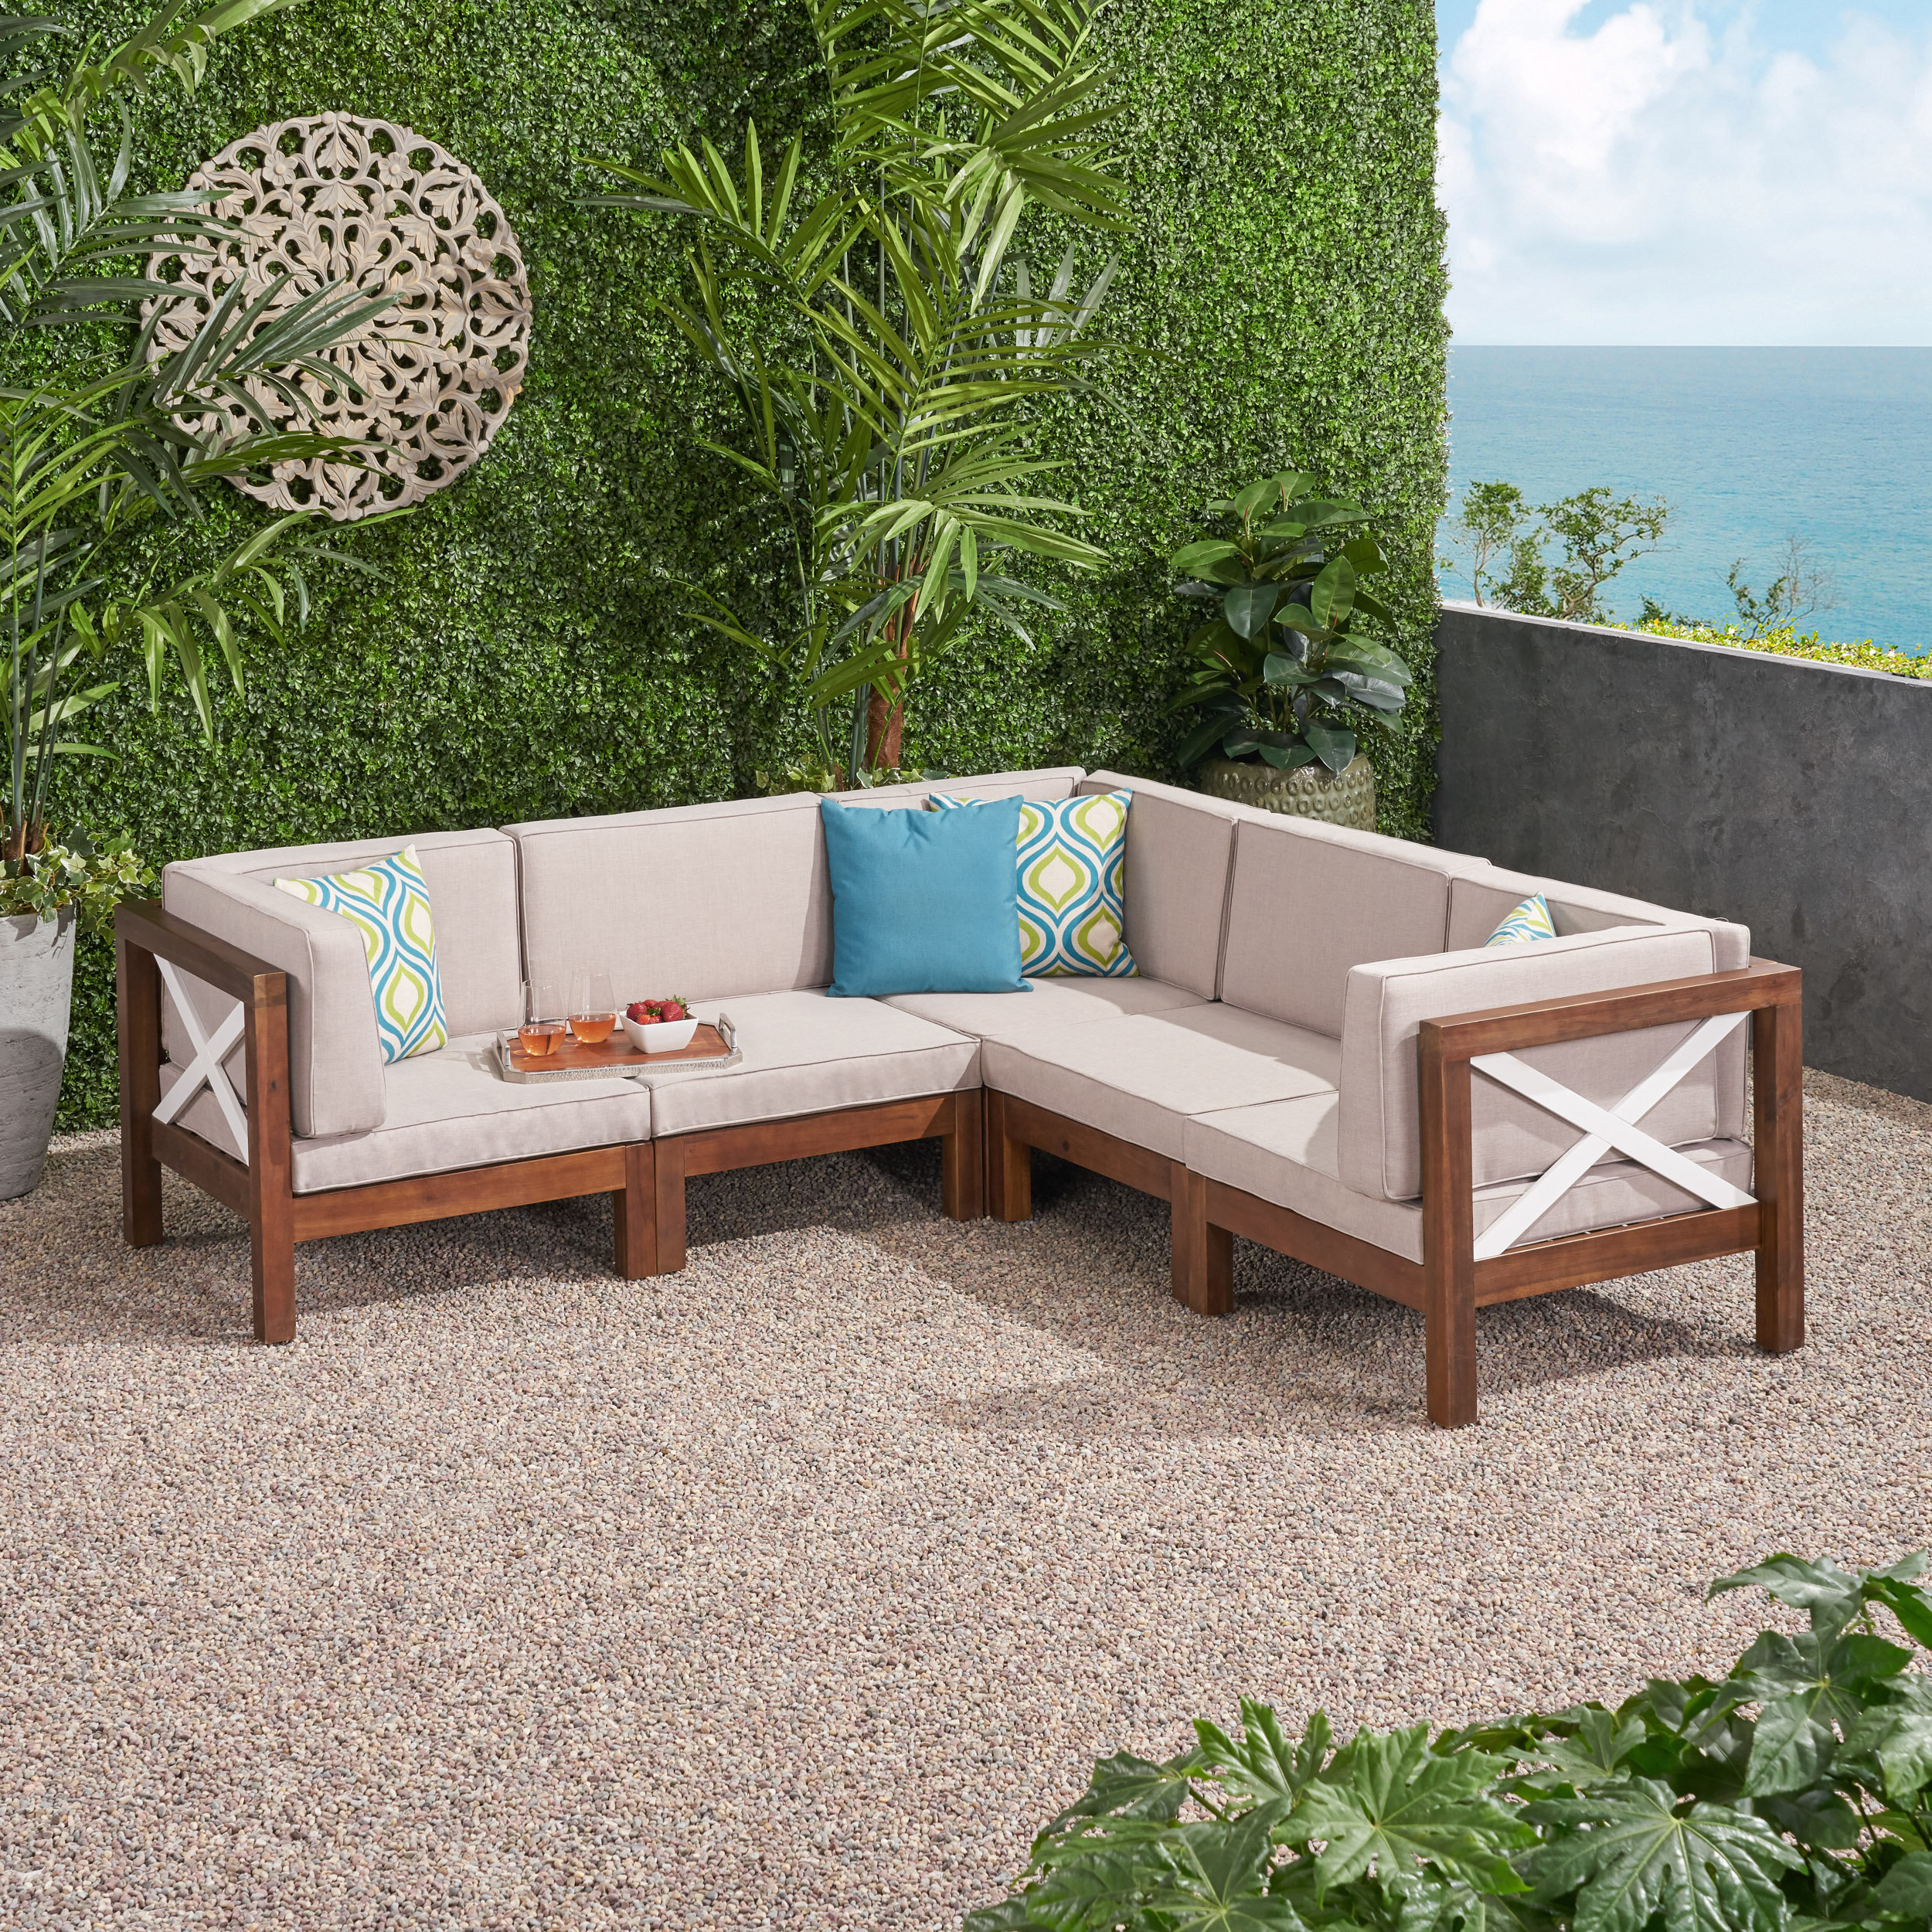 Greta Living Patio Sectionals With Cushions With Well Liked Breakwater Bay Patel Outdoor Patio Sectional With Cushions (Gallery 2 of 20)